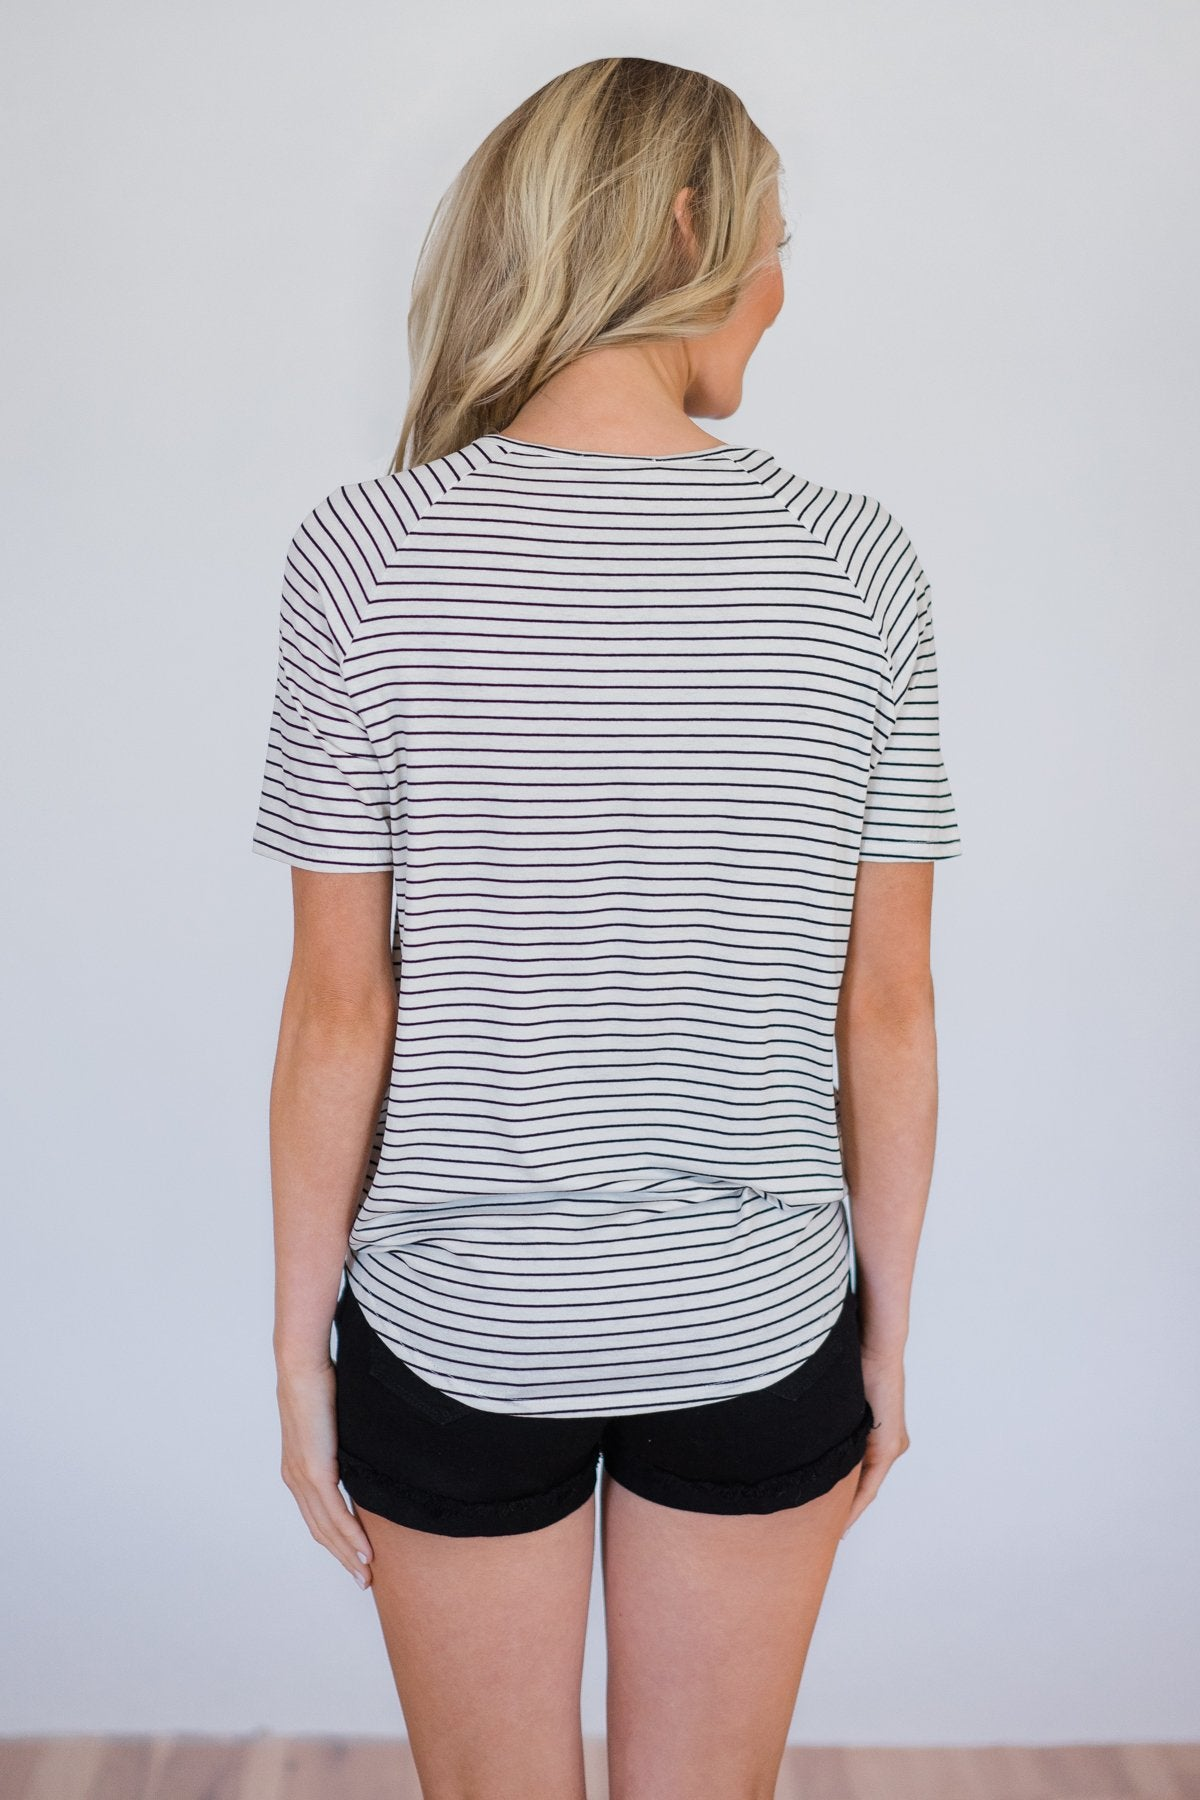 Already There Striped Criss Cross Top